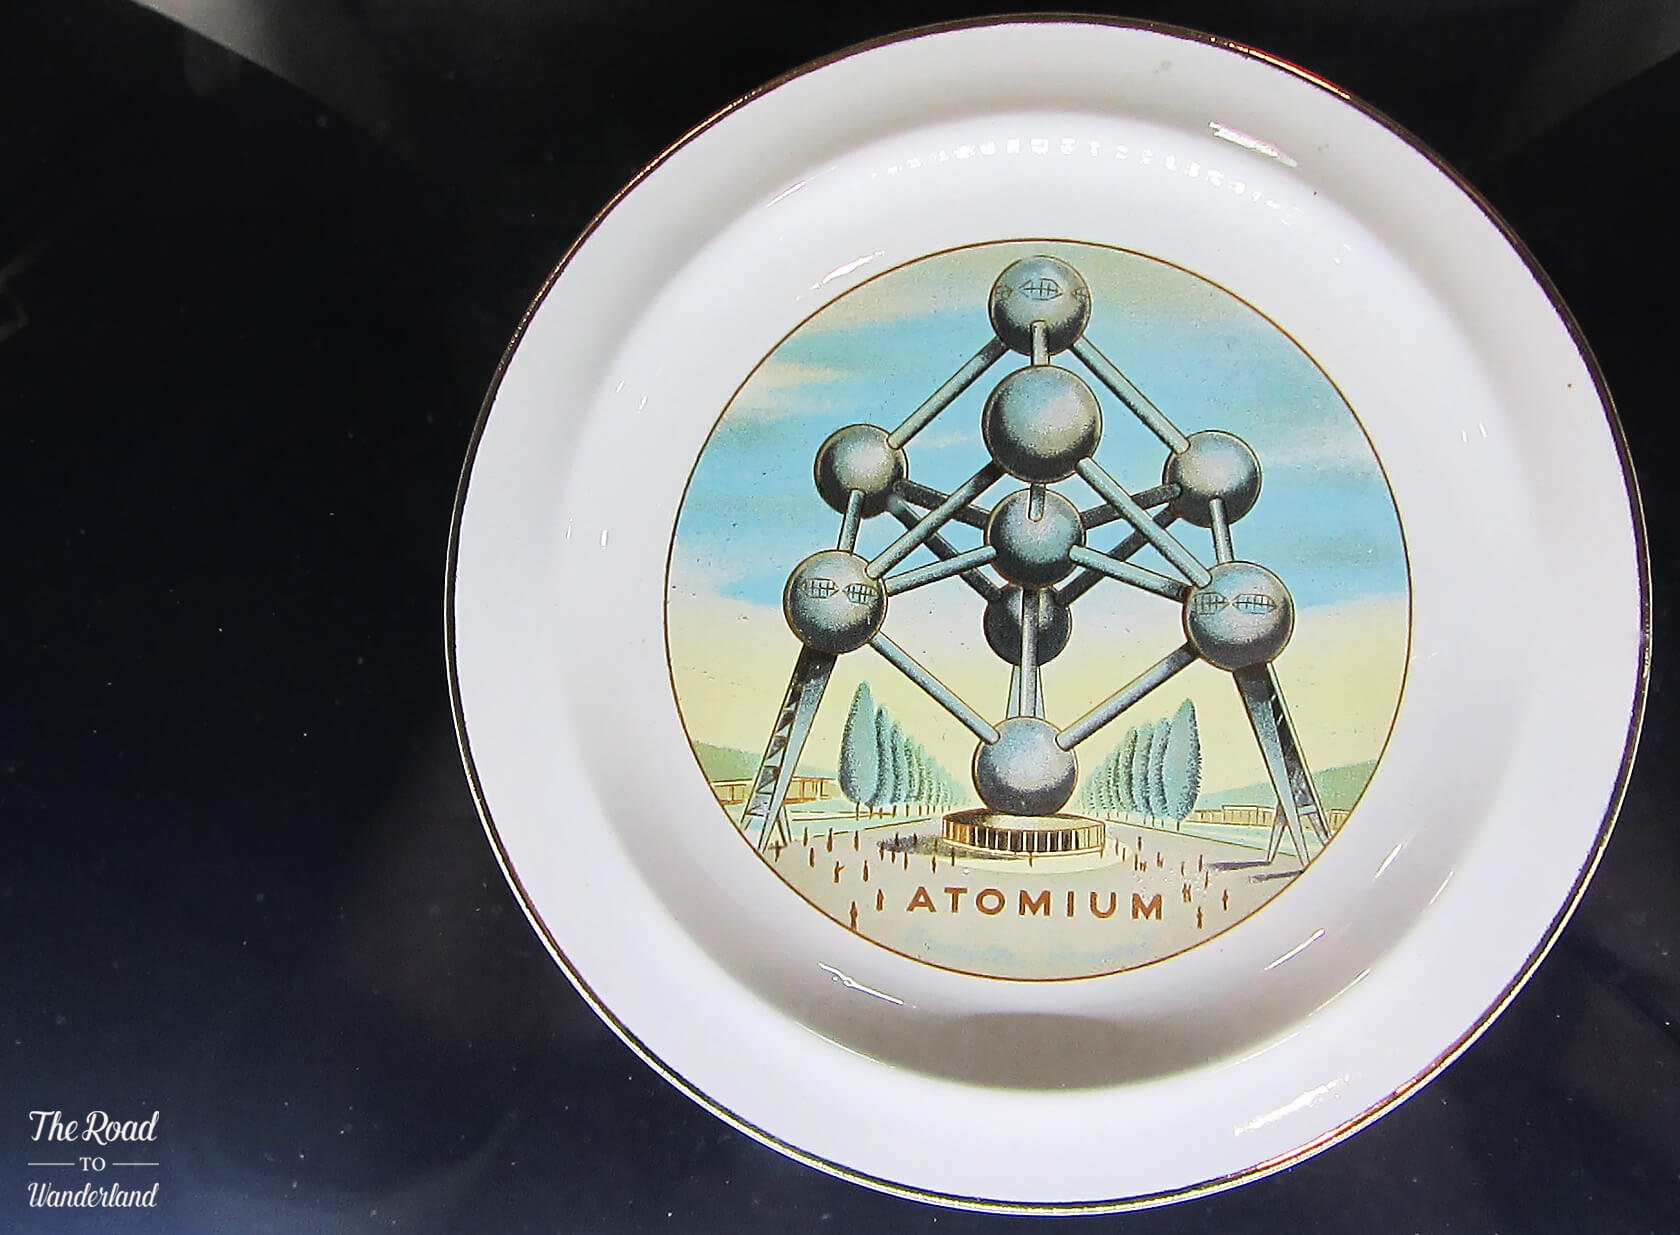 Memorabilia from the 1958 Brussels World Expo: Atomium plate